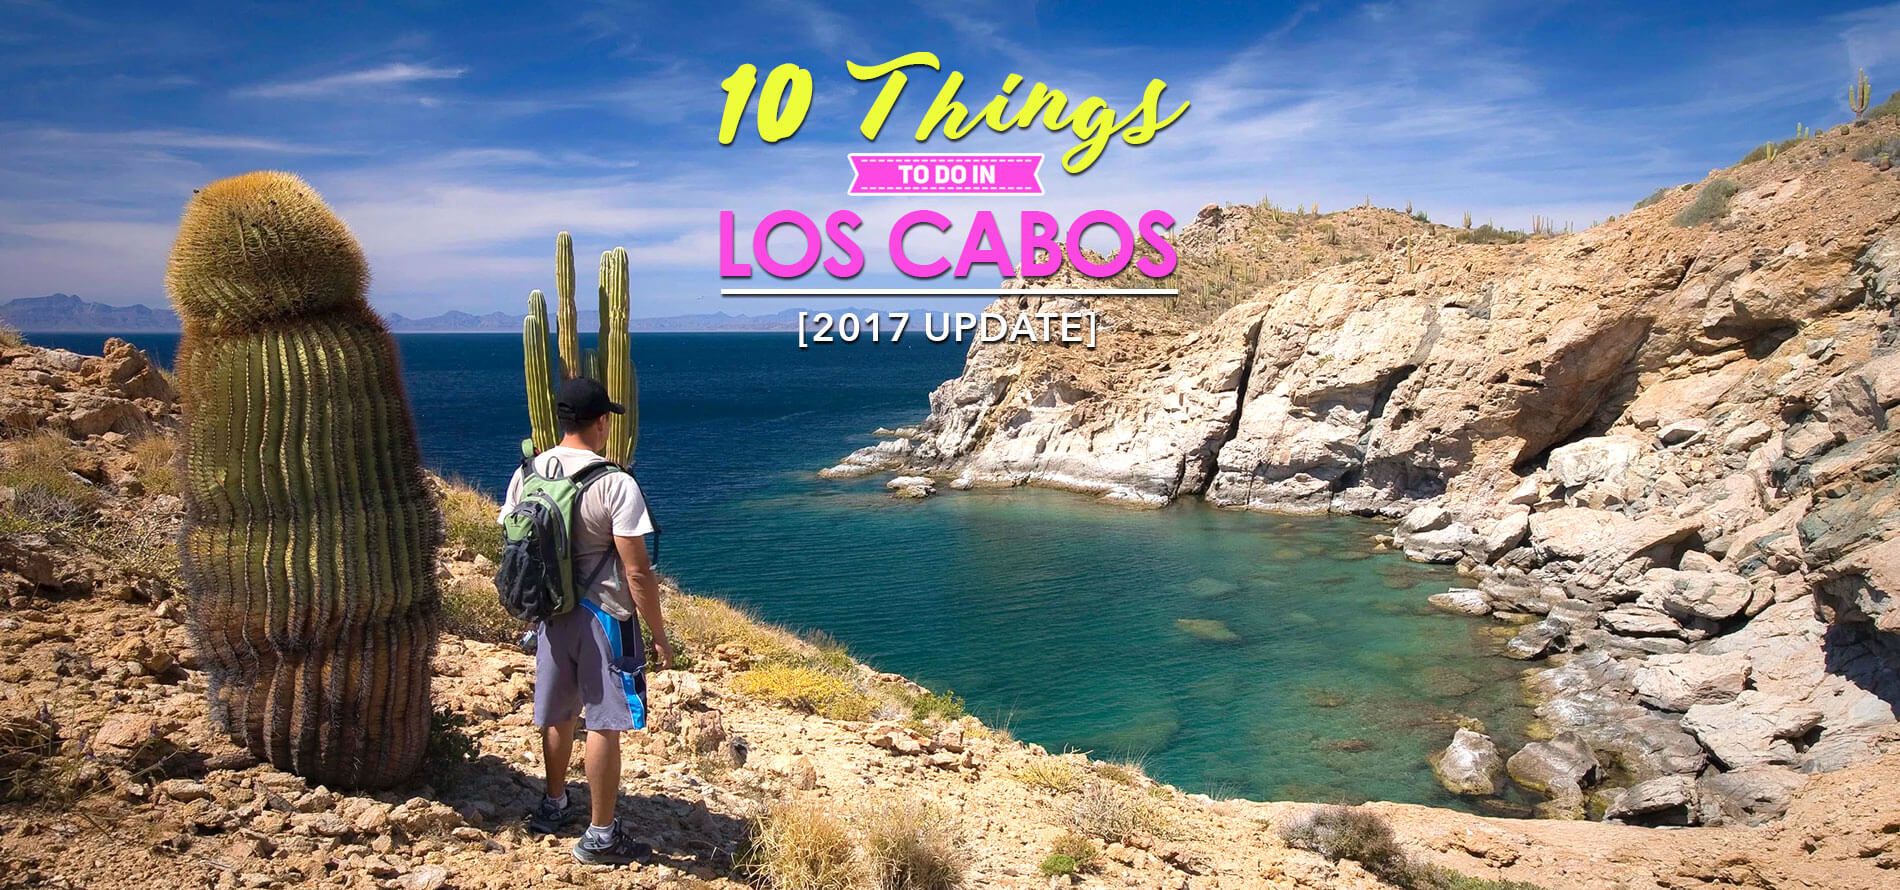 Top 10 things to do in los cabos in 2017